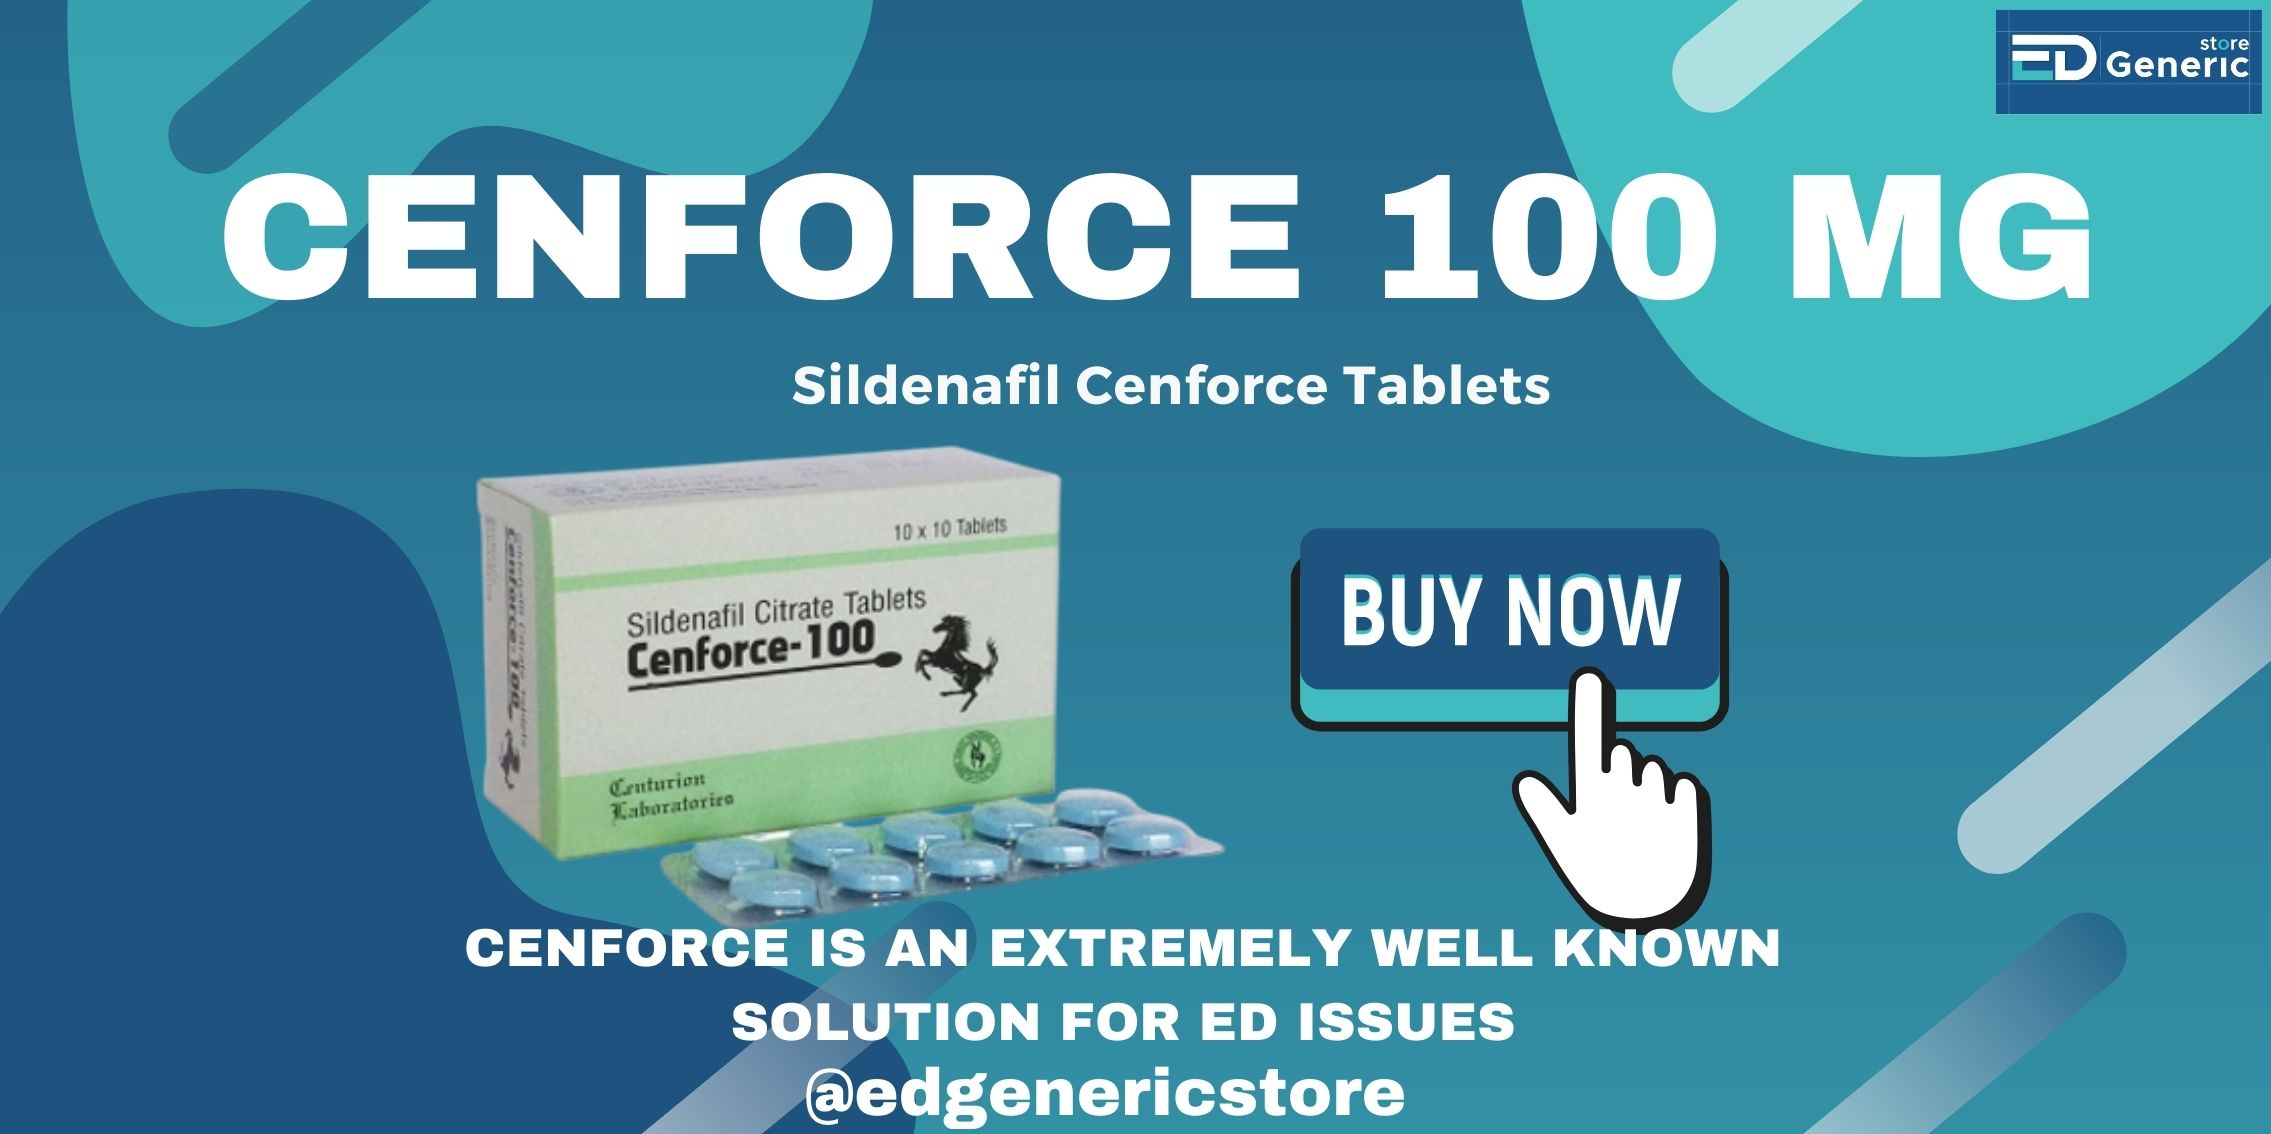 Cenforce 100mg Tablets| Ed Generic Store